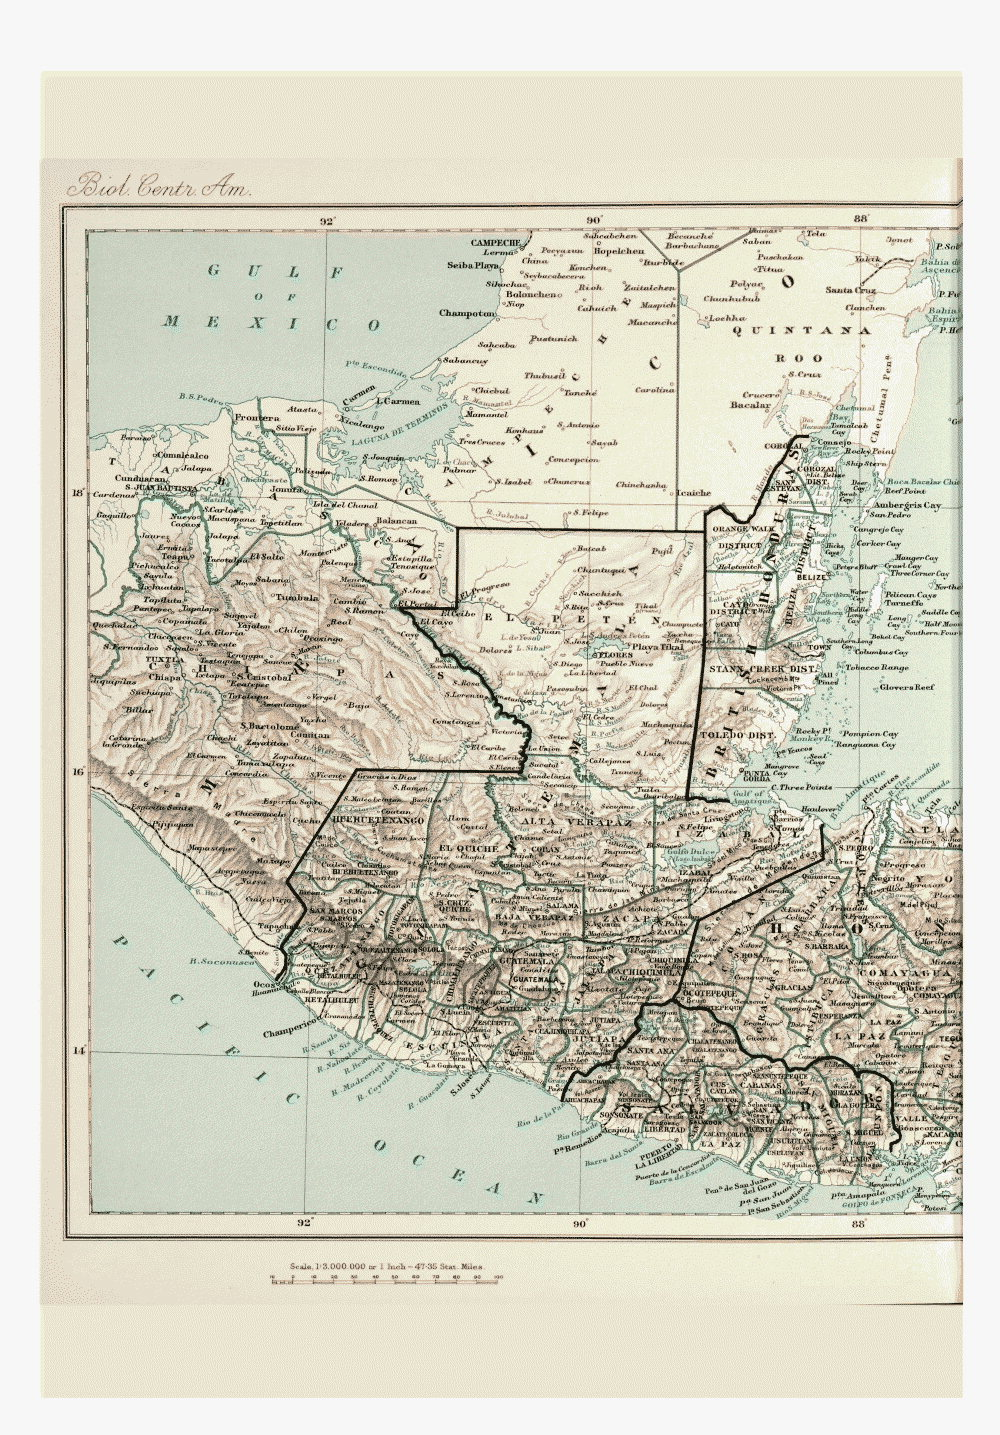 Maps of Central America,  Image number:bca_01_00_00_194